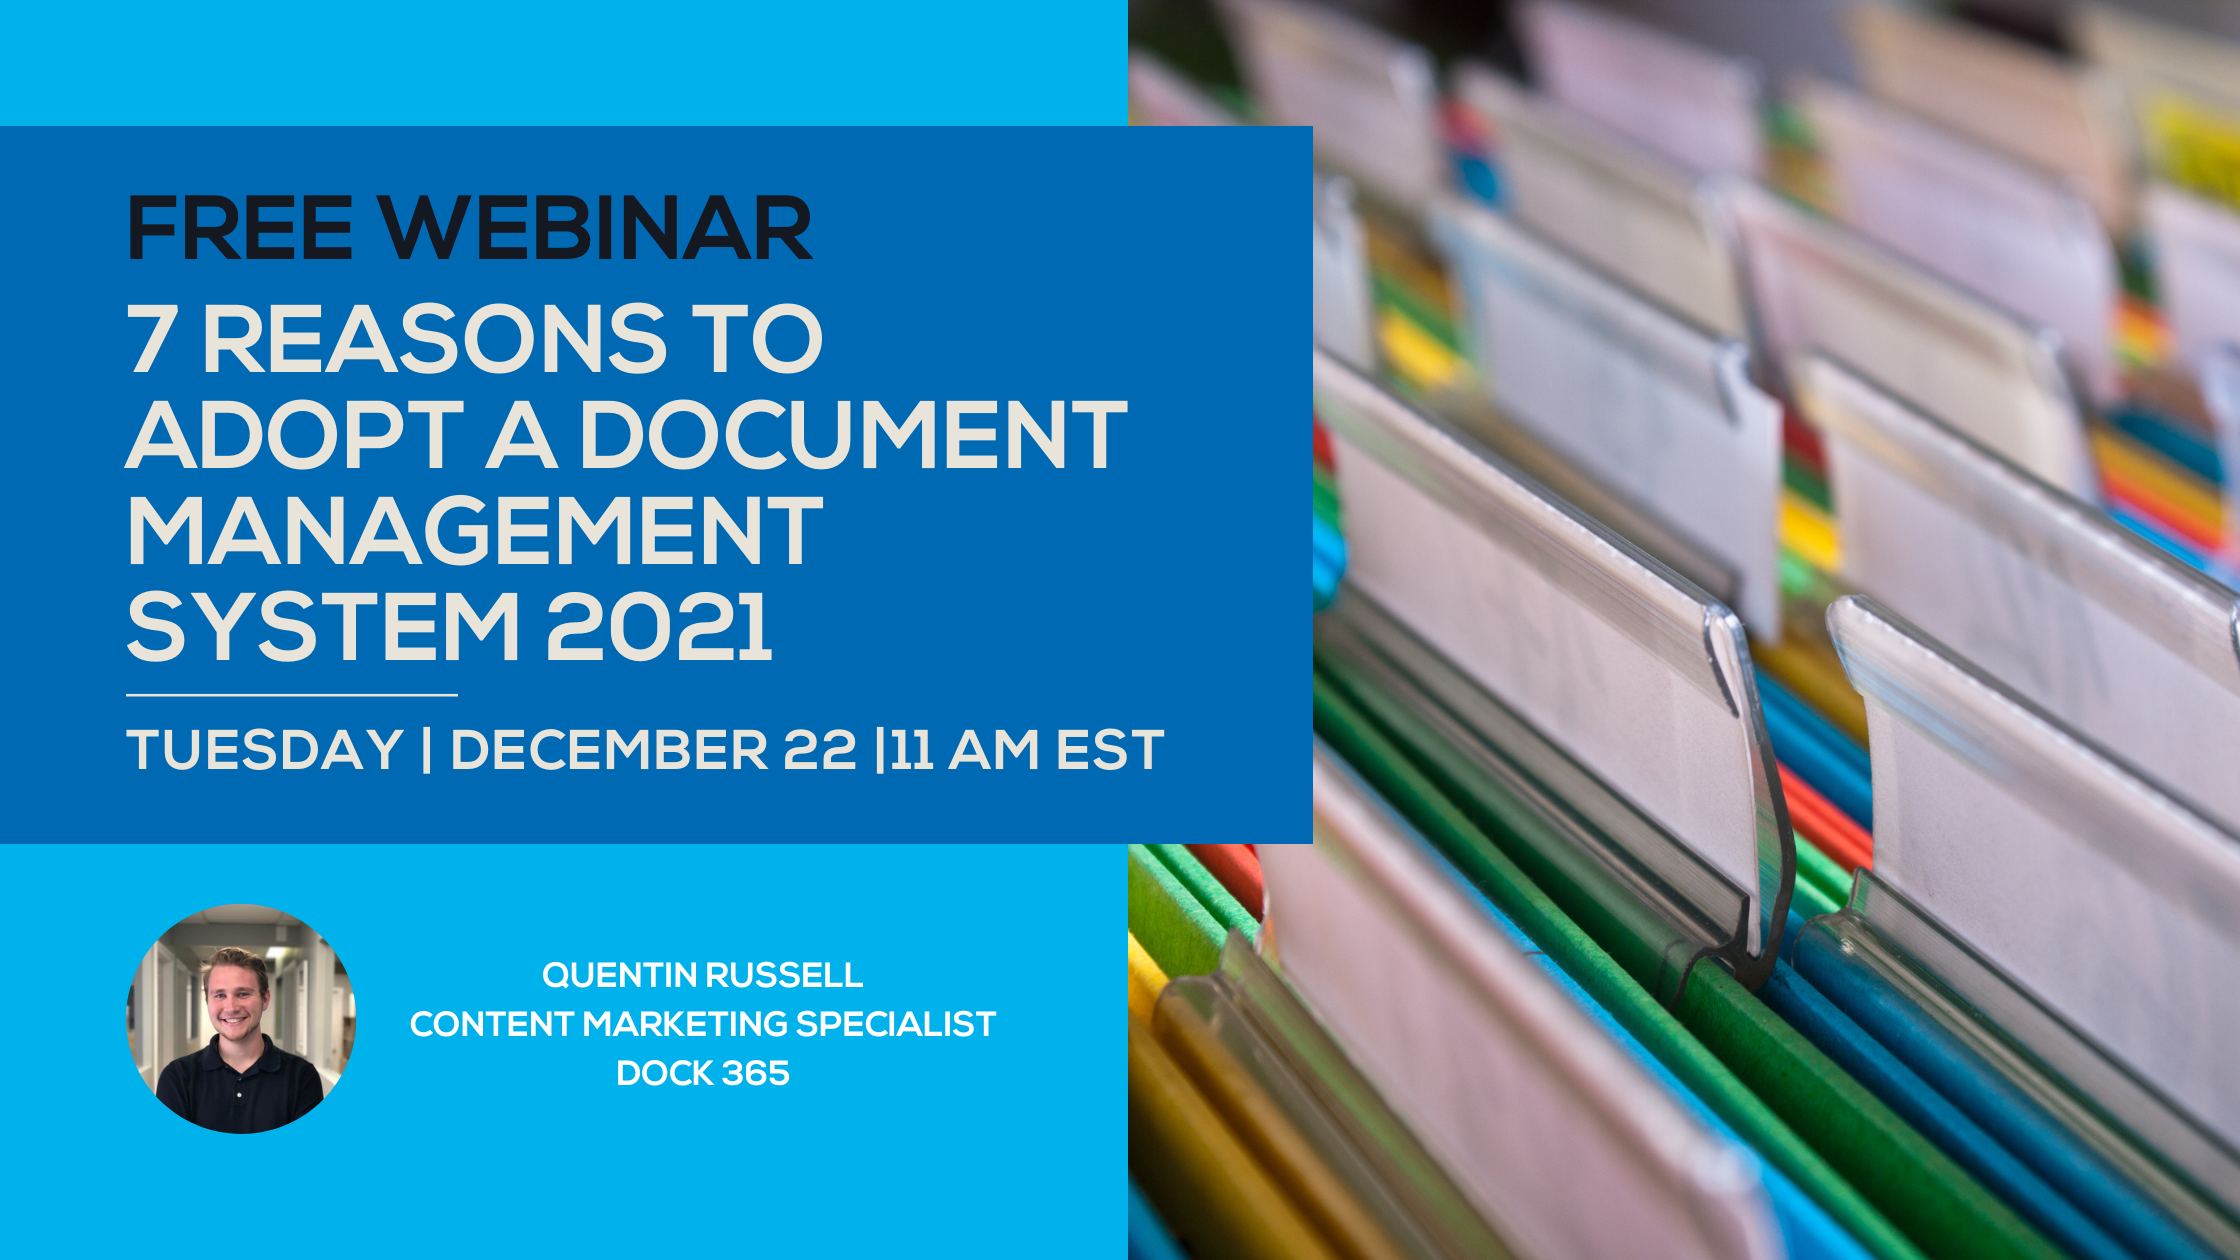 Dock 365 Webinar - 7 Reasons To Adopt a Document Management System in 2021